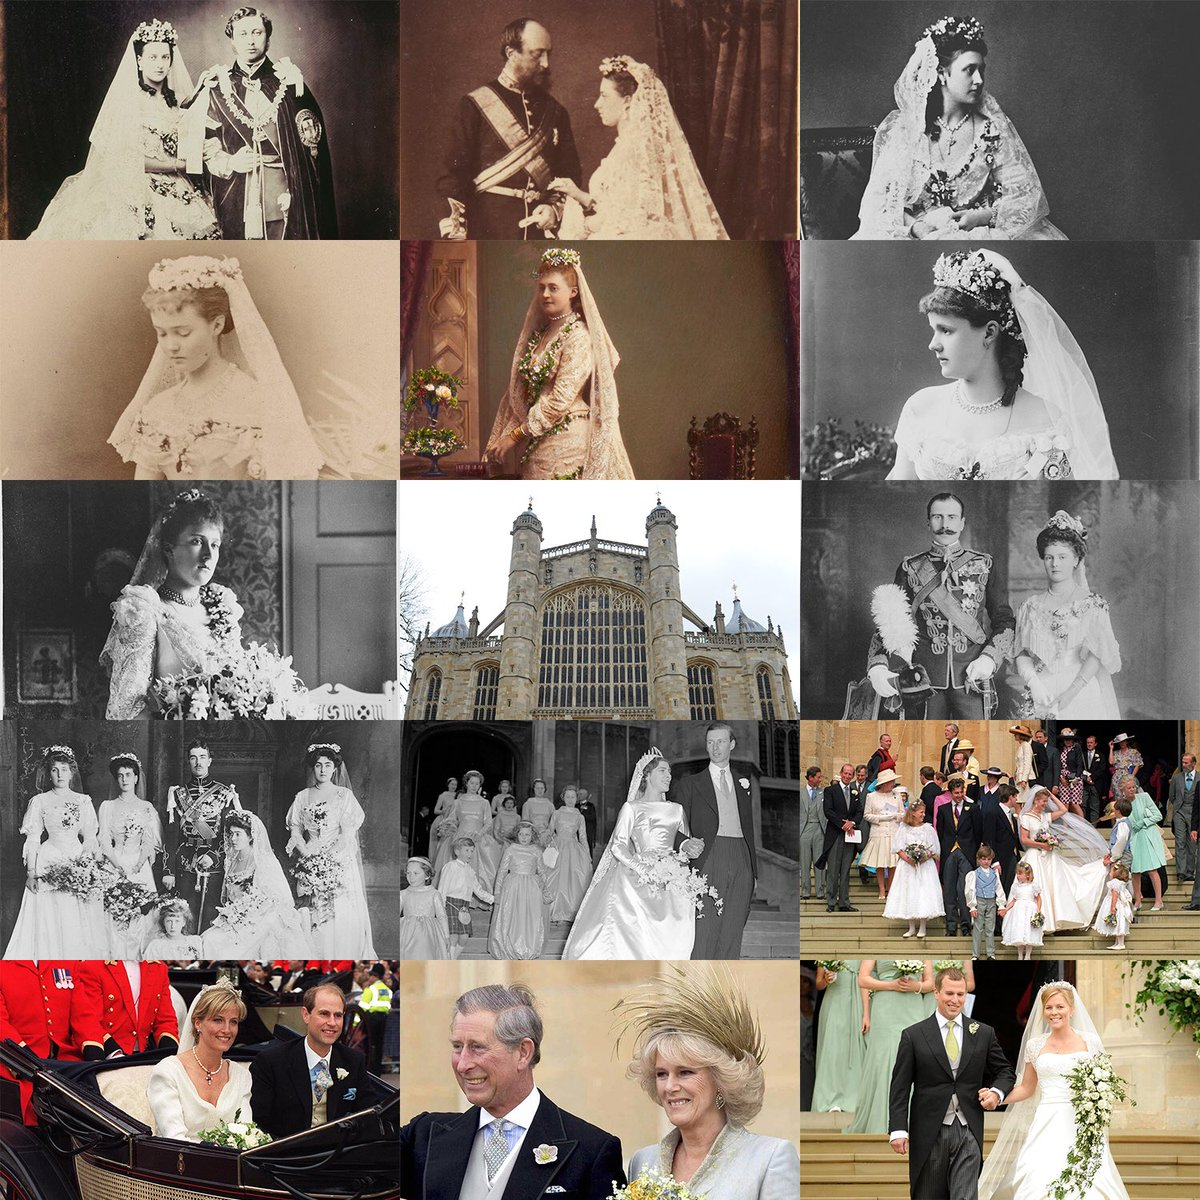 the royal family on twitter today prince harry and ms meghan markle will become the sixteenth royal couple to celebrate their marriage at windsor castle since 1863 find out more https t co 8vkn7jsj4c https t co karoyieue9 prince harry and ms meghan markle